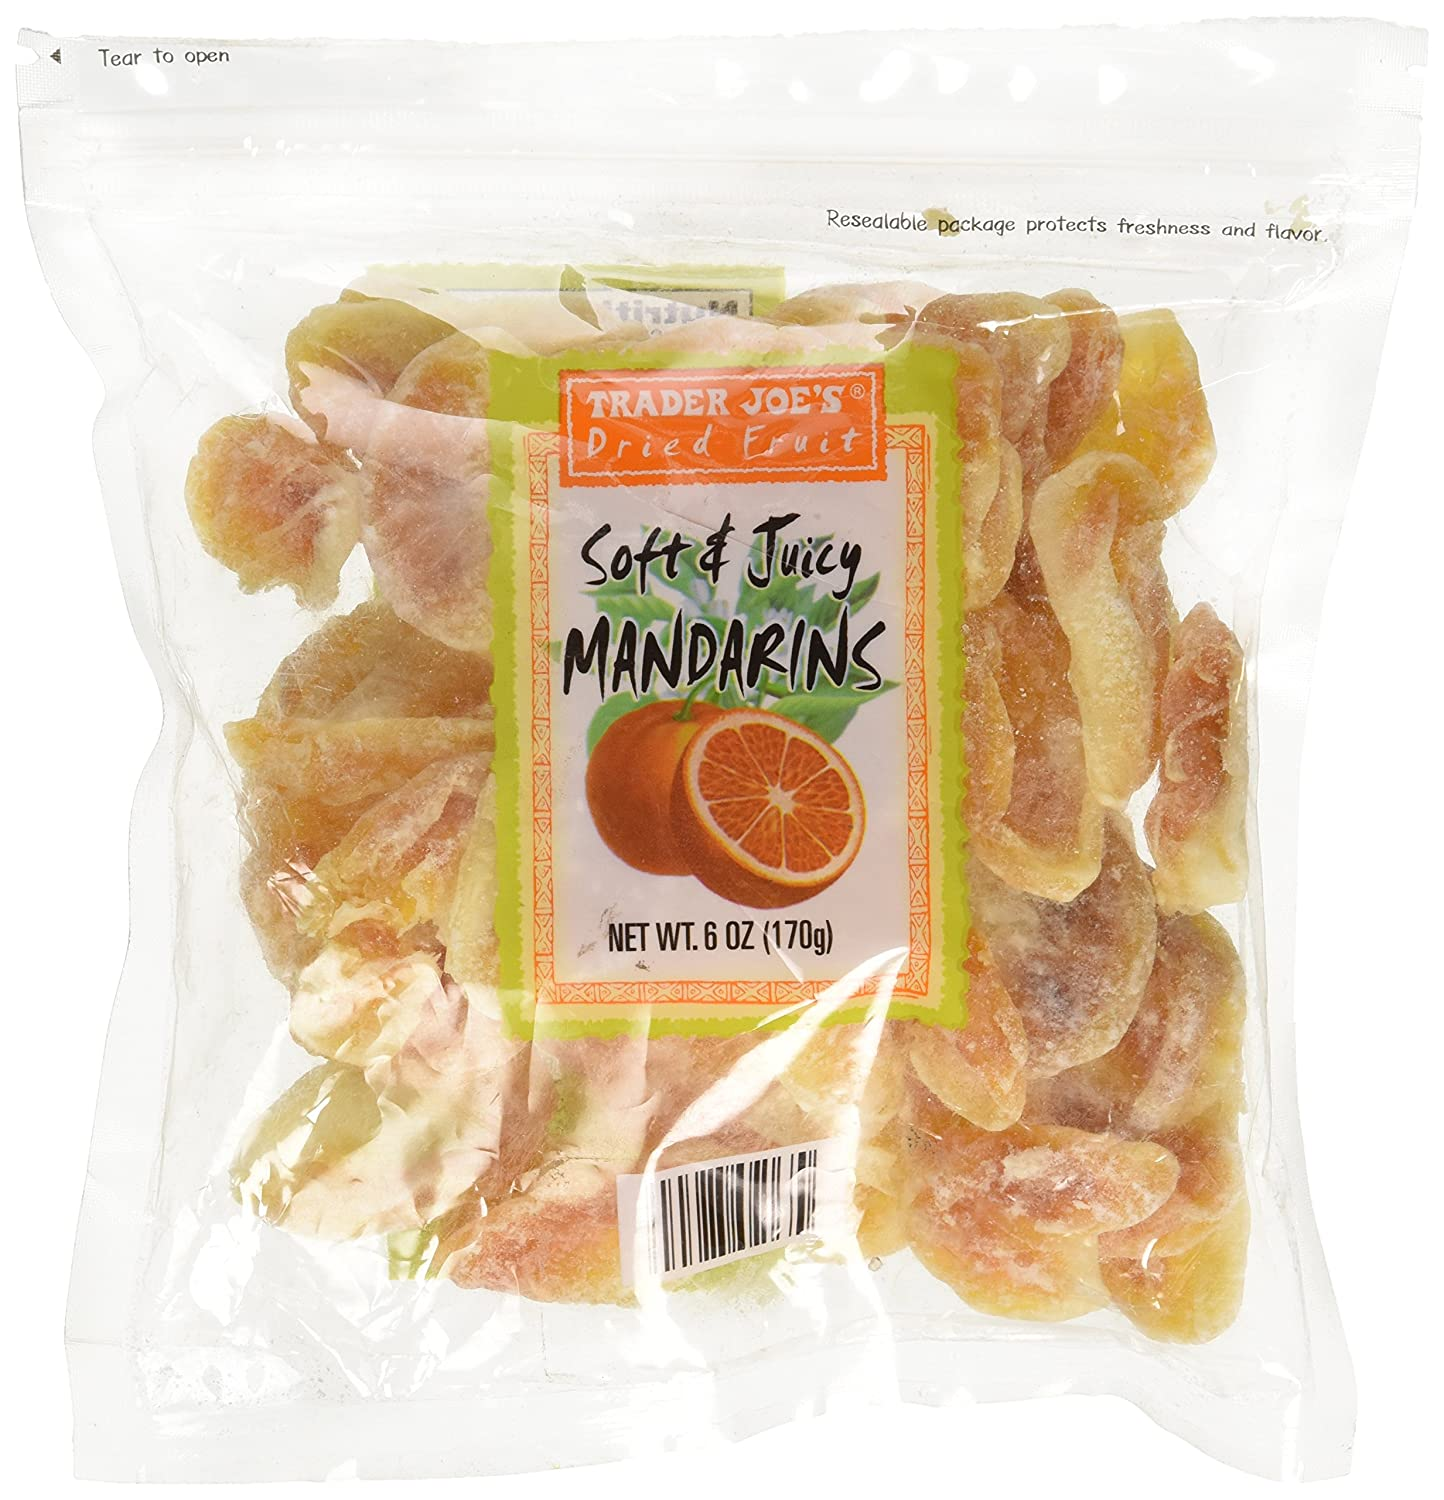 Trader Joe's Dried Fruit Soft & Juicy Mandarins 6oz.